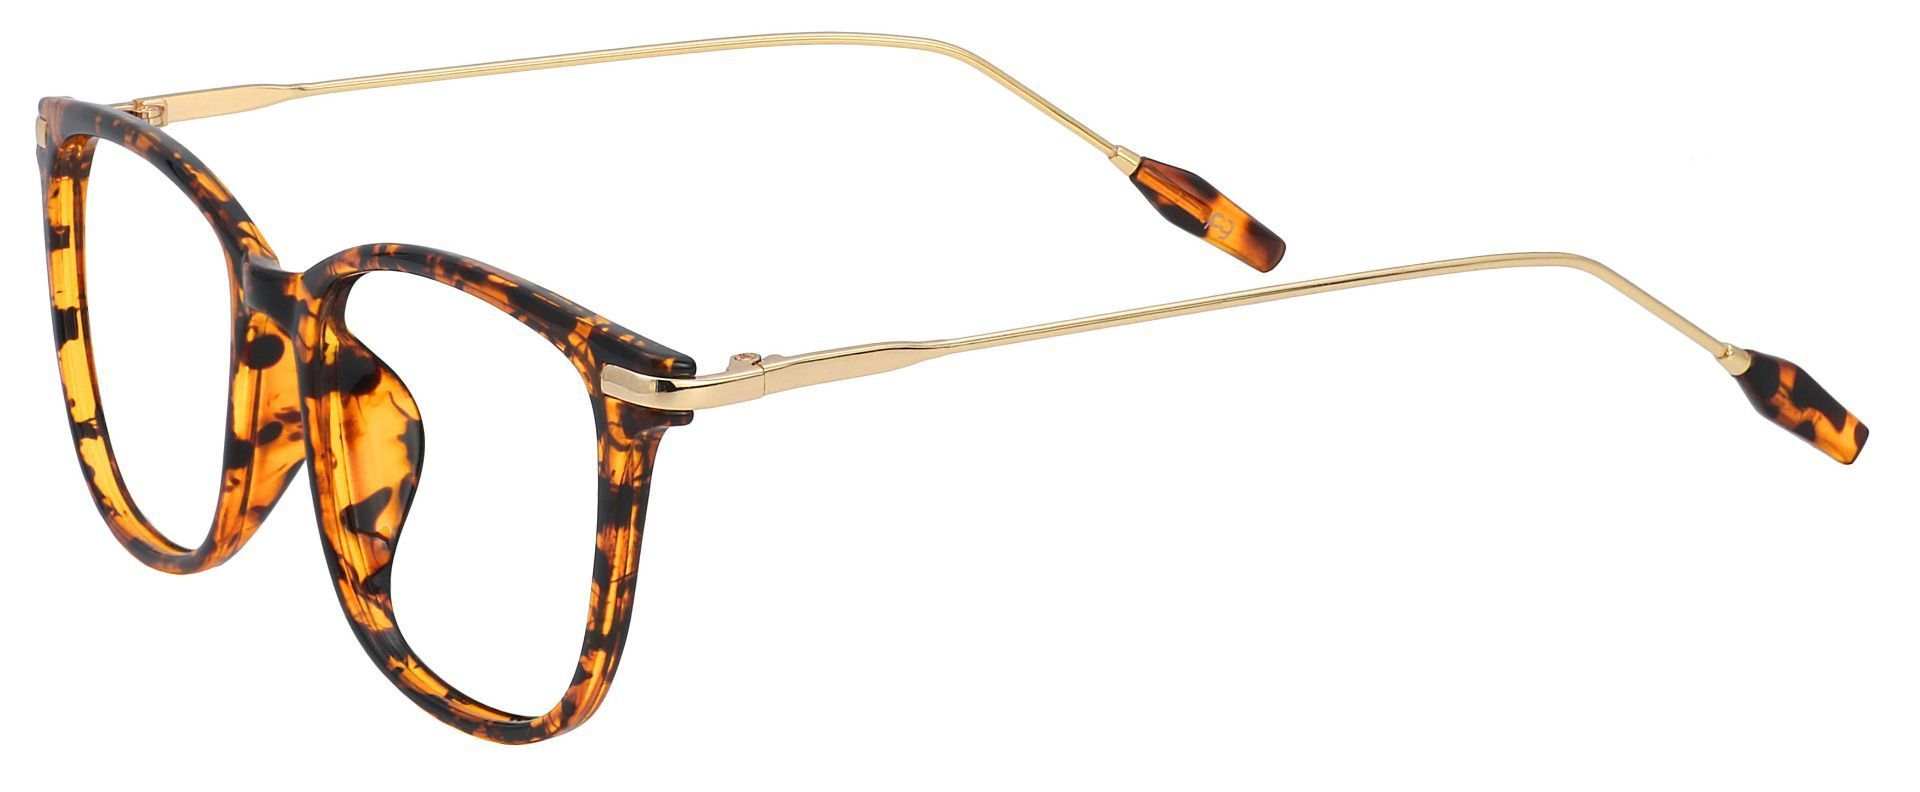 Katie Oval Reading Glasses - Tortoise